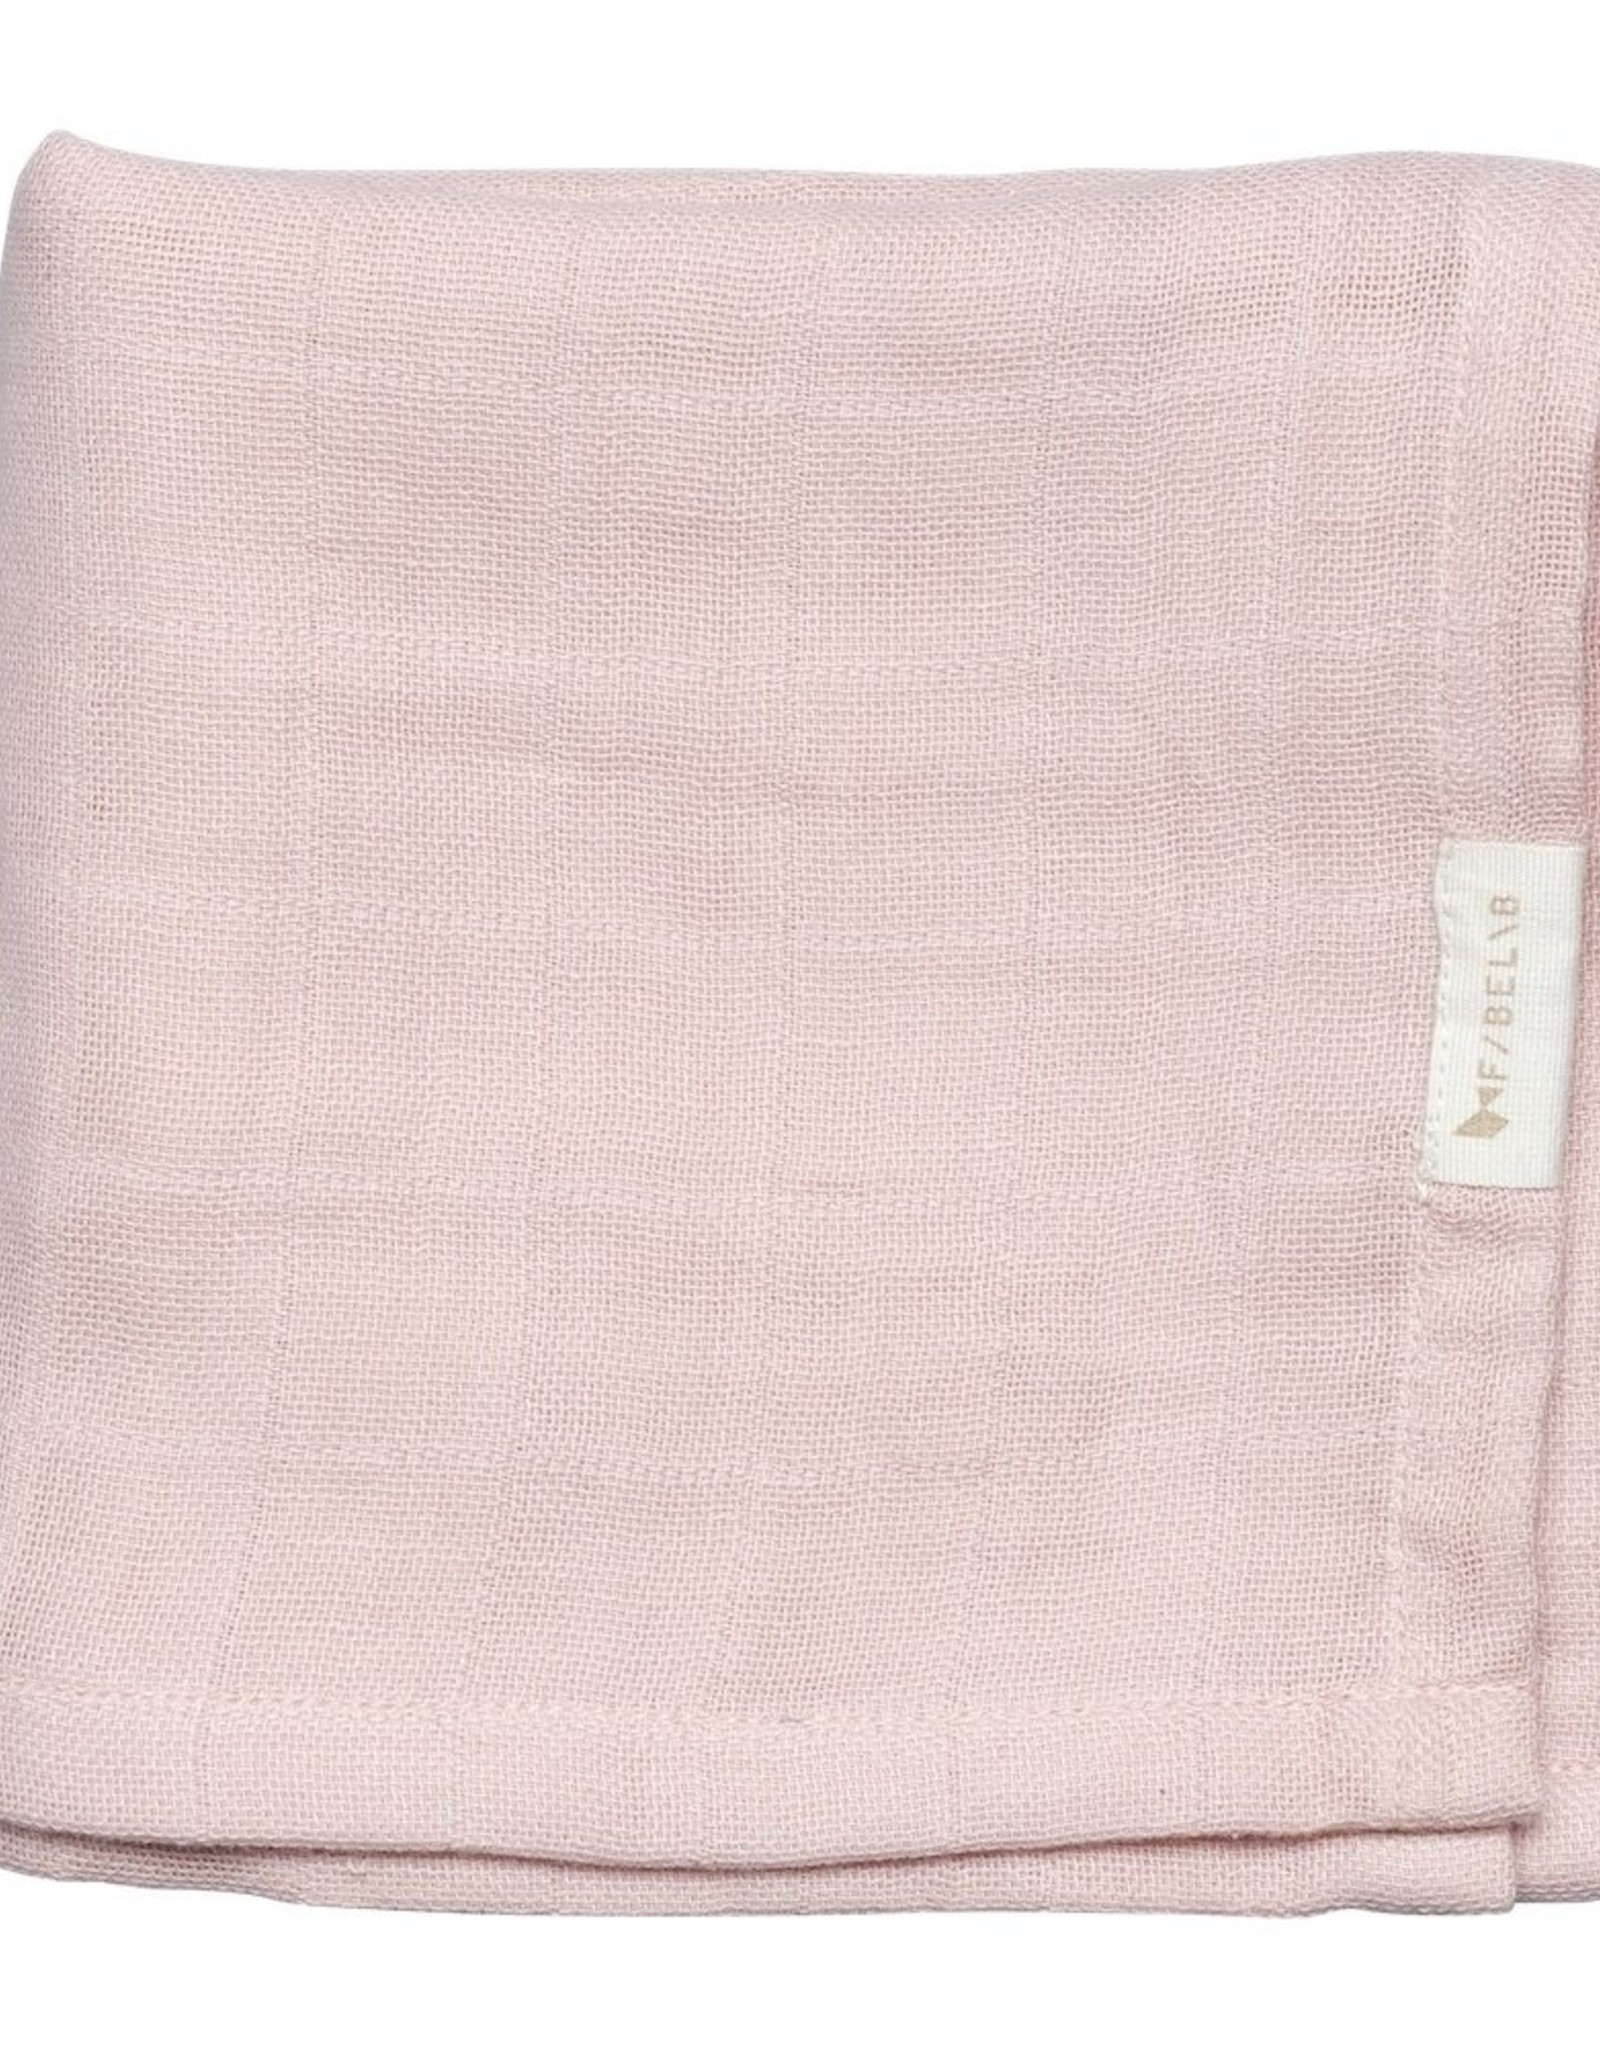 FABELAB Fabelab Muslin cloth - 2pack - Berry